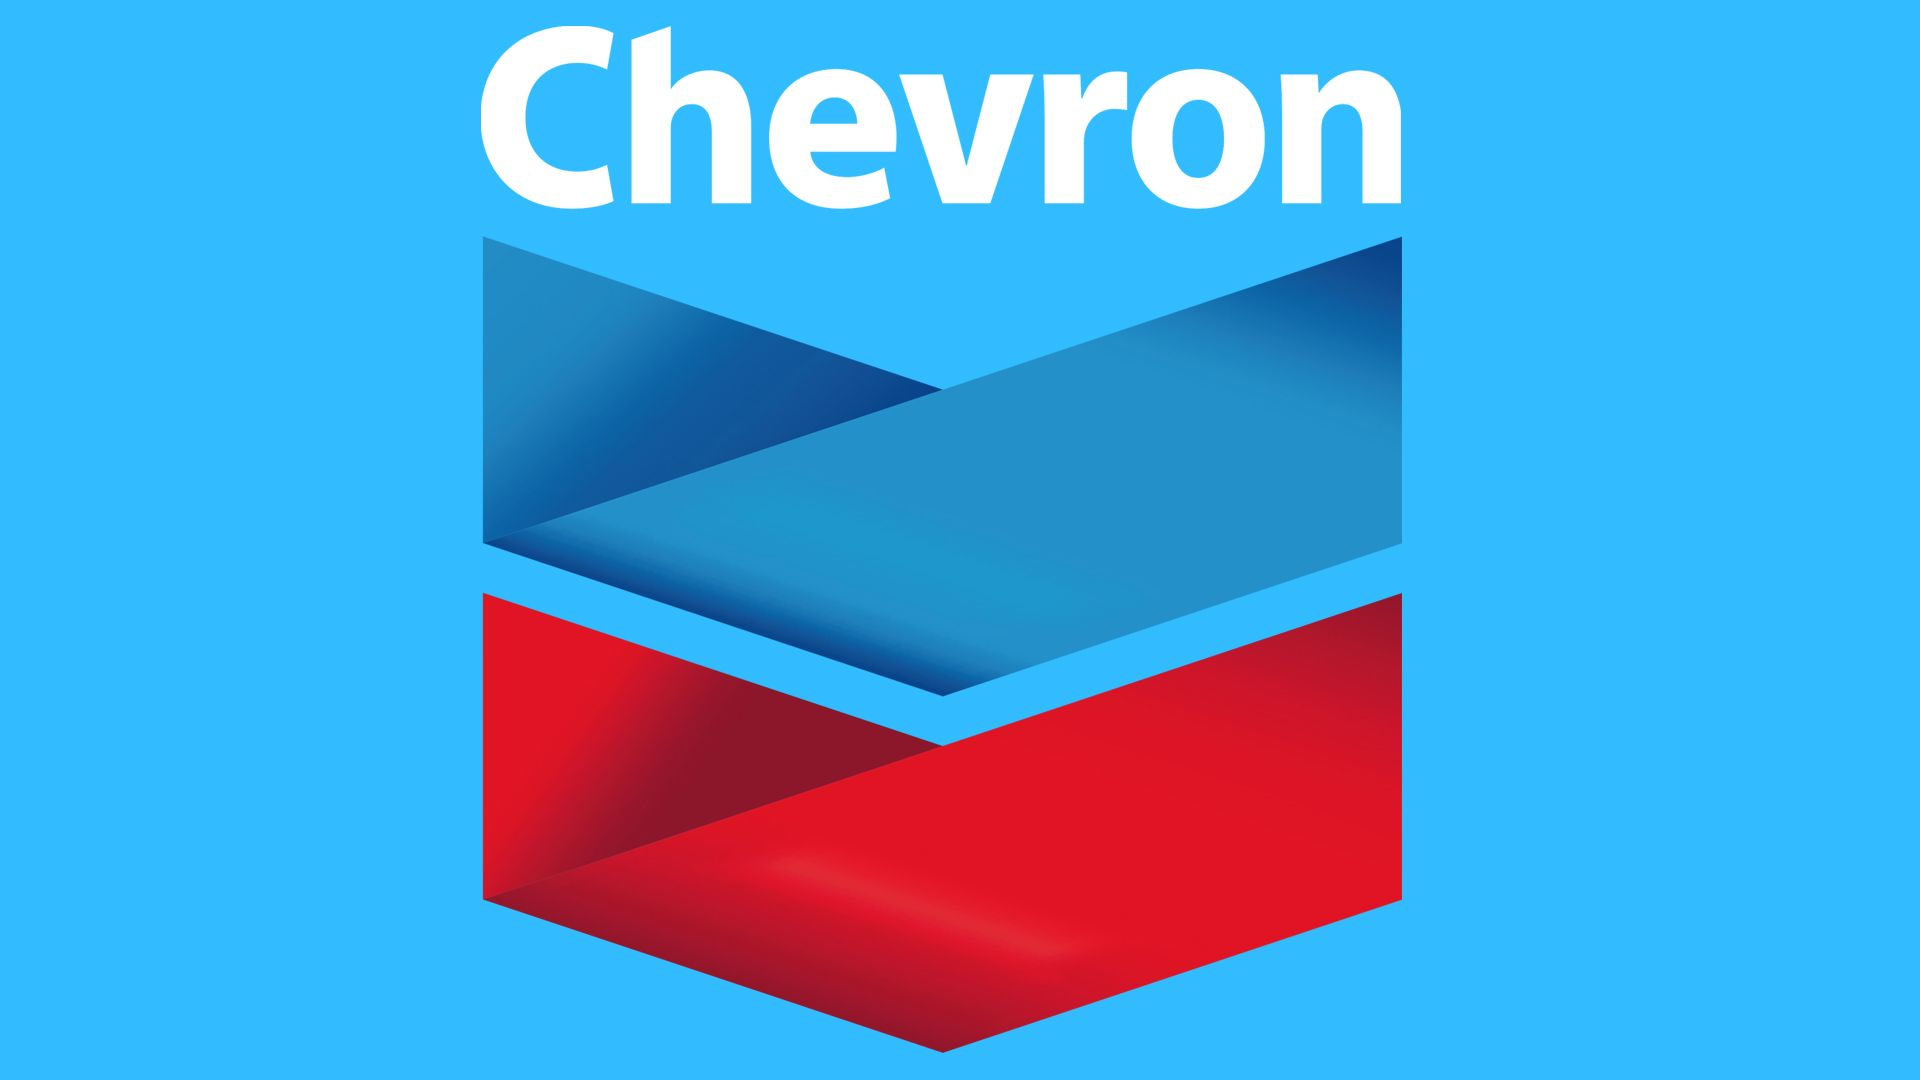 Chevron Logo - Chevron Logo, Chevron Symbol, Meaning, History and Evolution